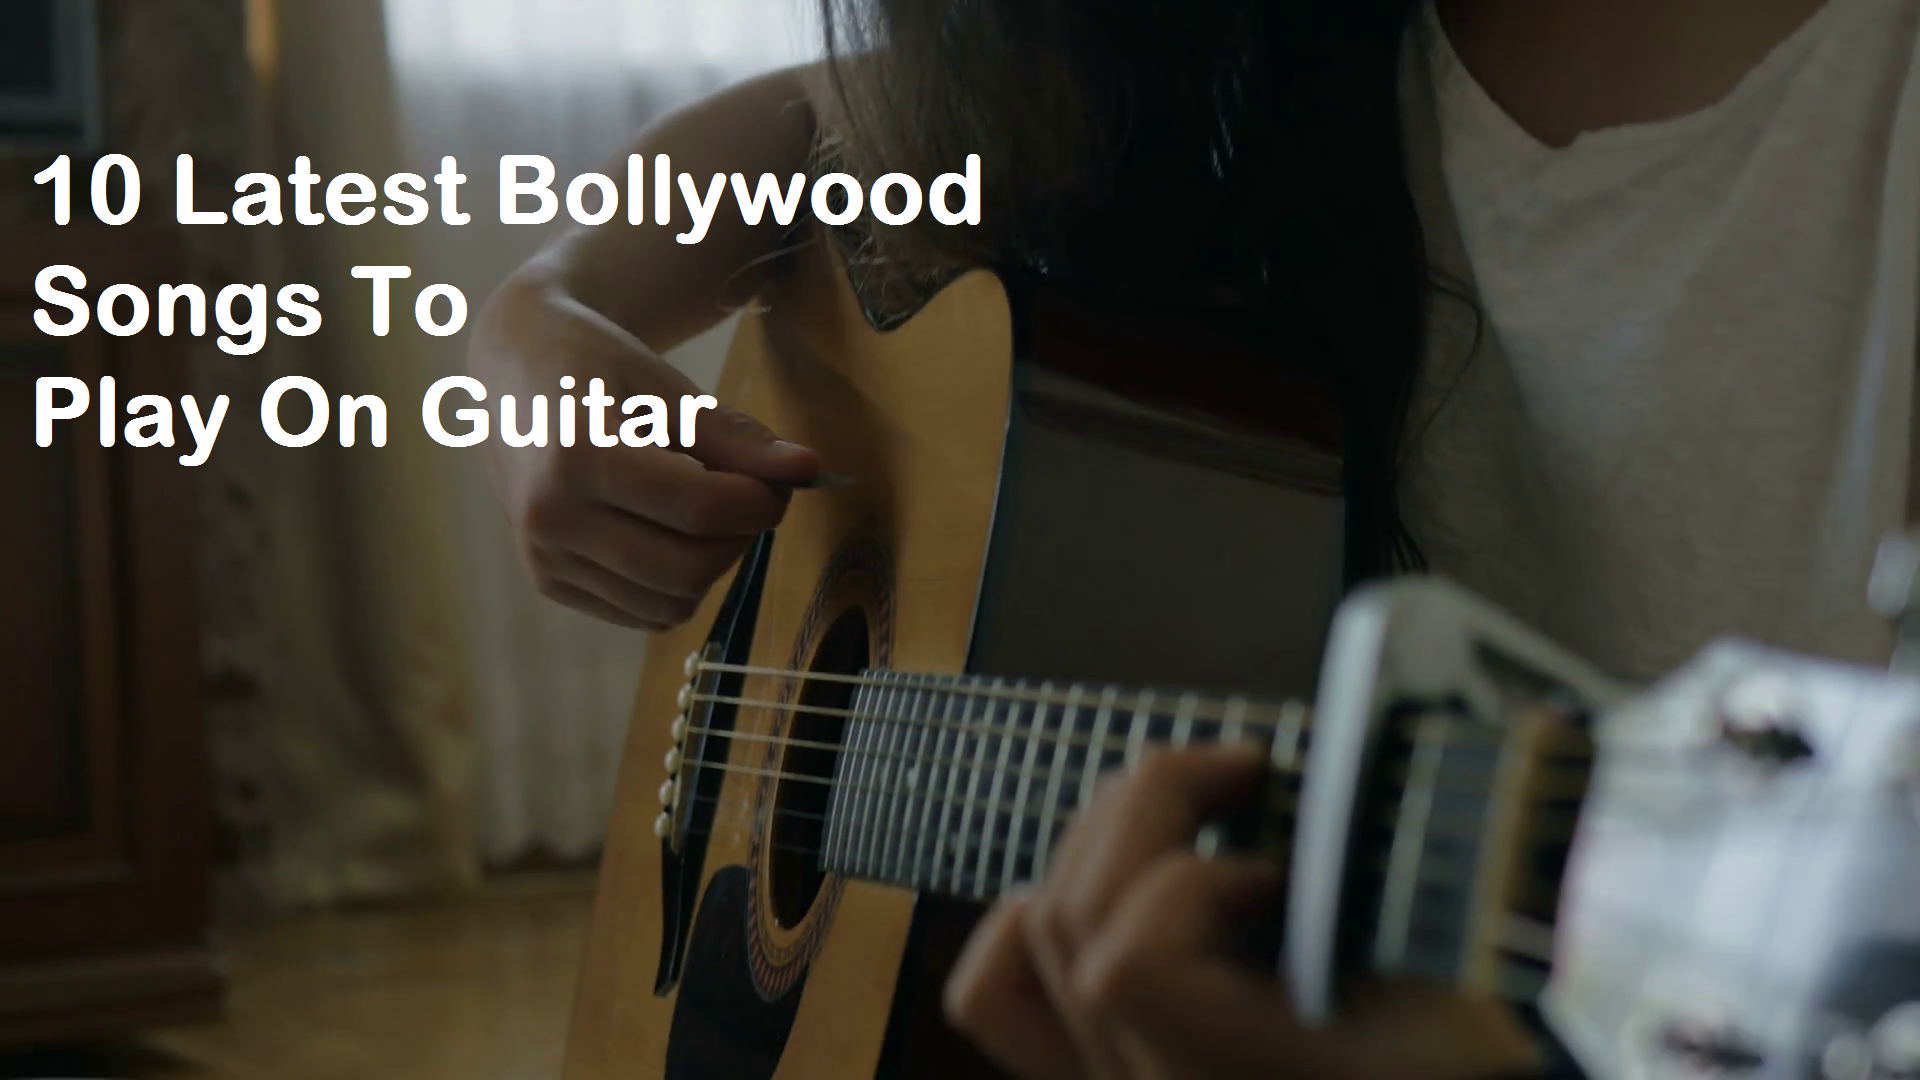 10 Latest Bollywood Songs To Play On Guitar - Learn Guitar Chords